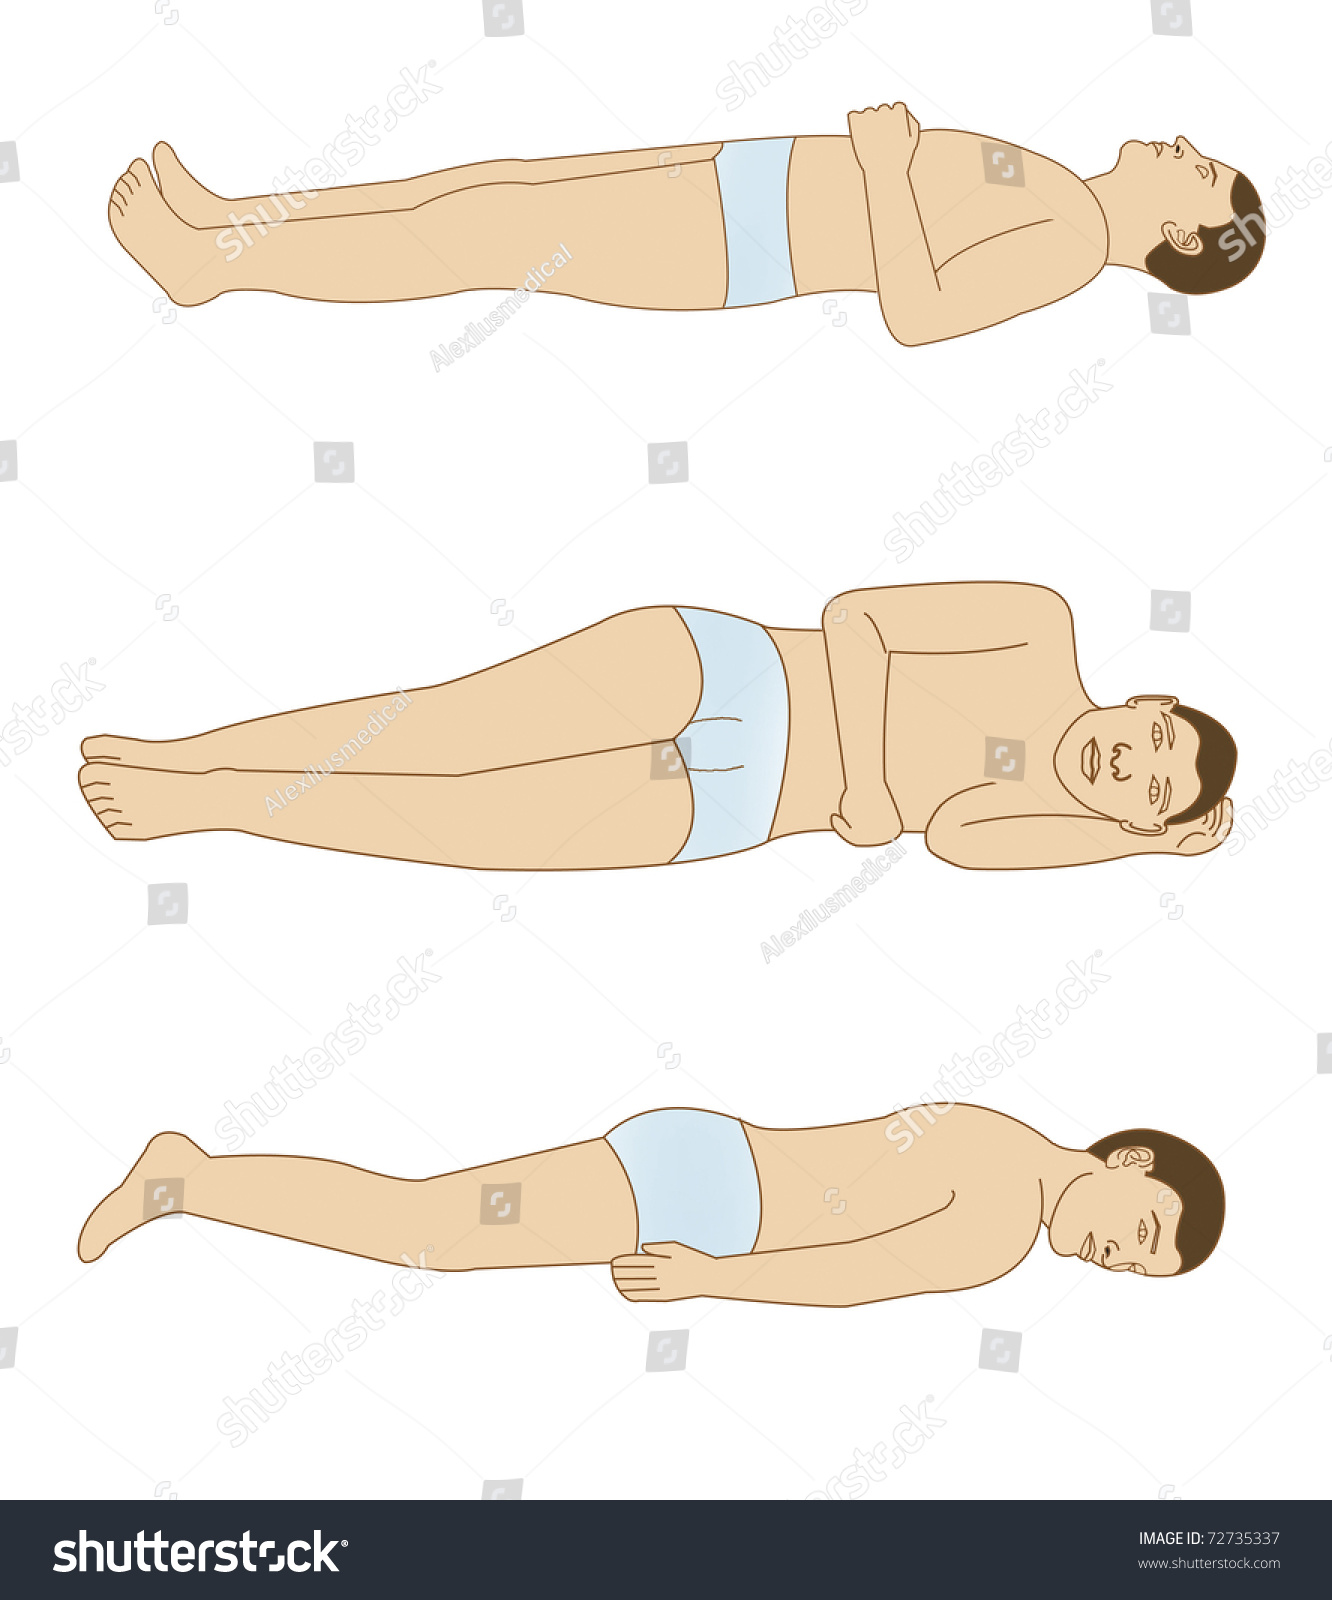 Schematic Drawing Positions Body Good Rest Stock Illustration Of The For A